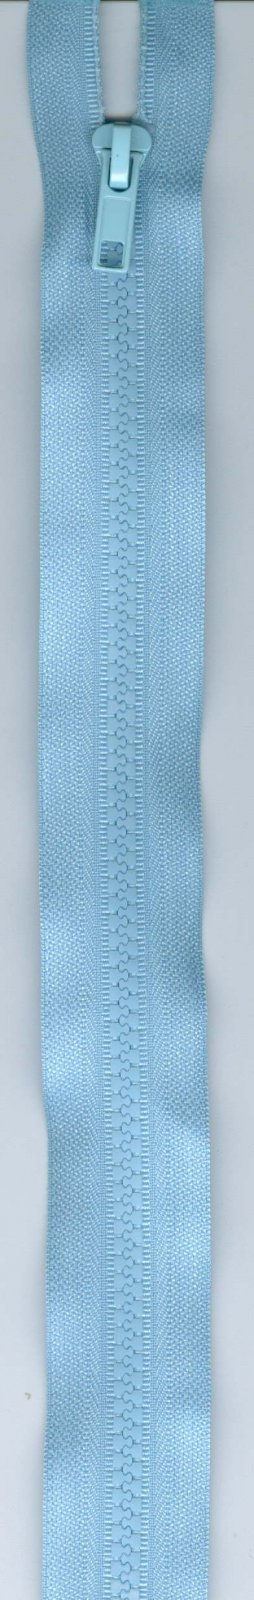 16 Separating Zipper #5 - Light Blue